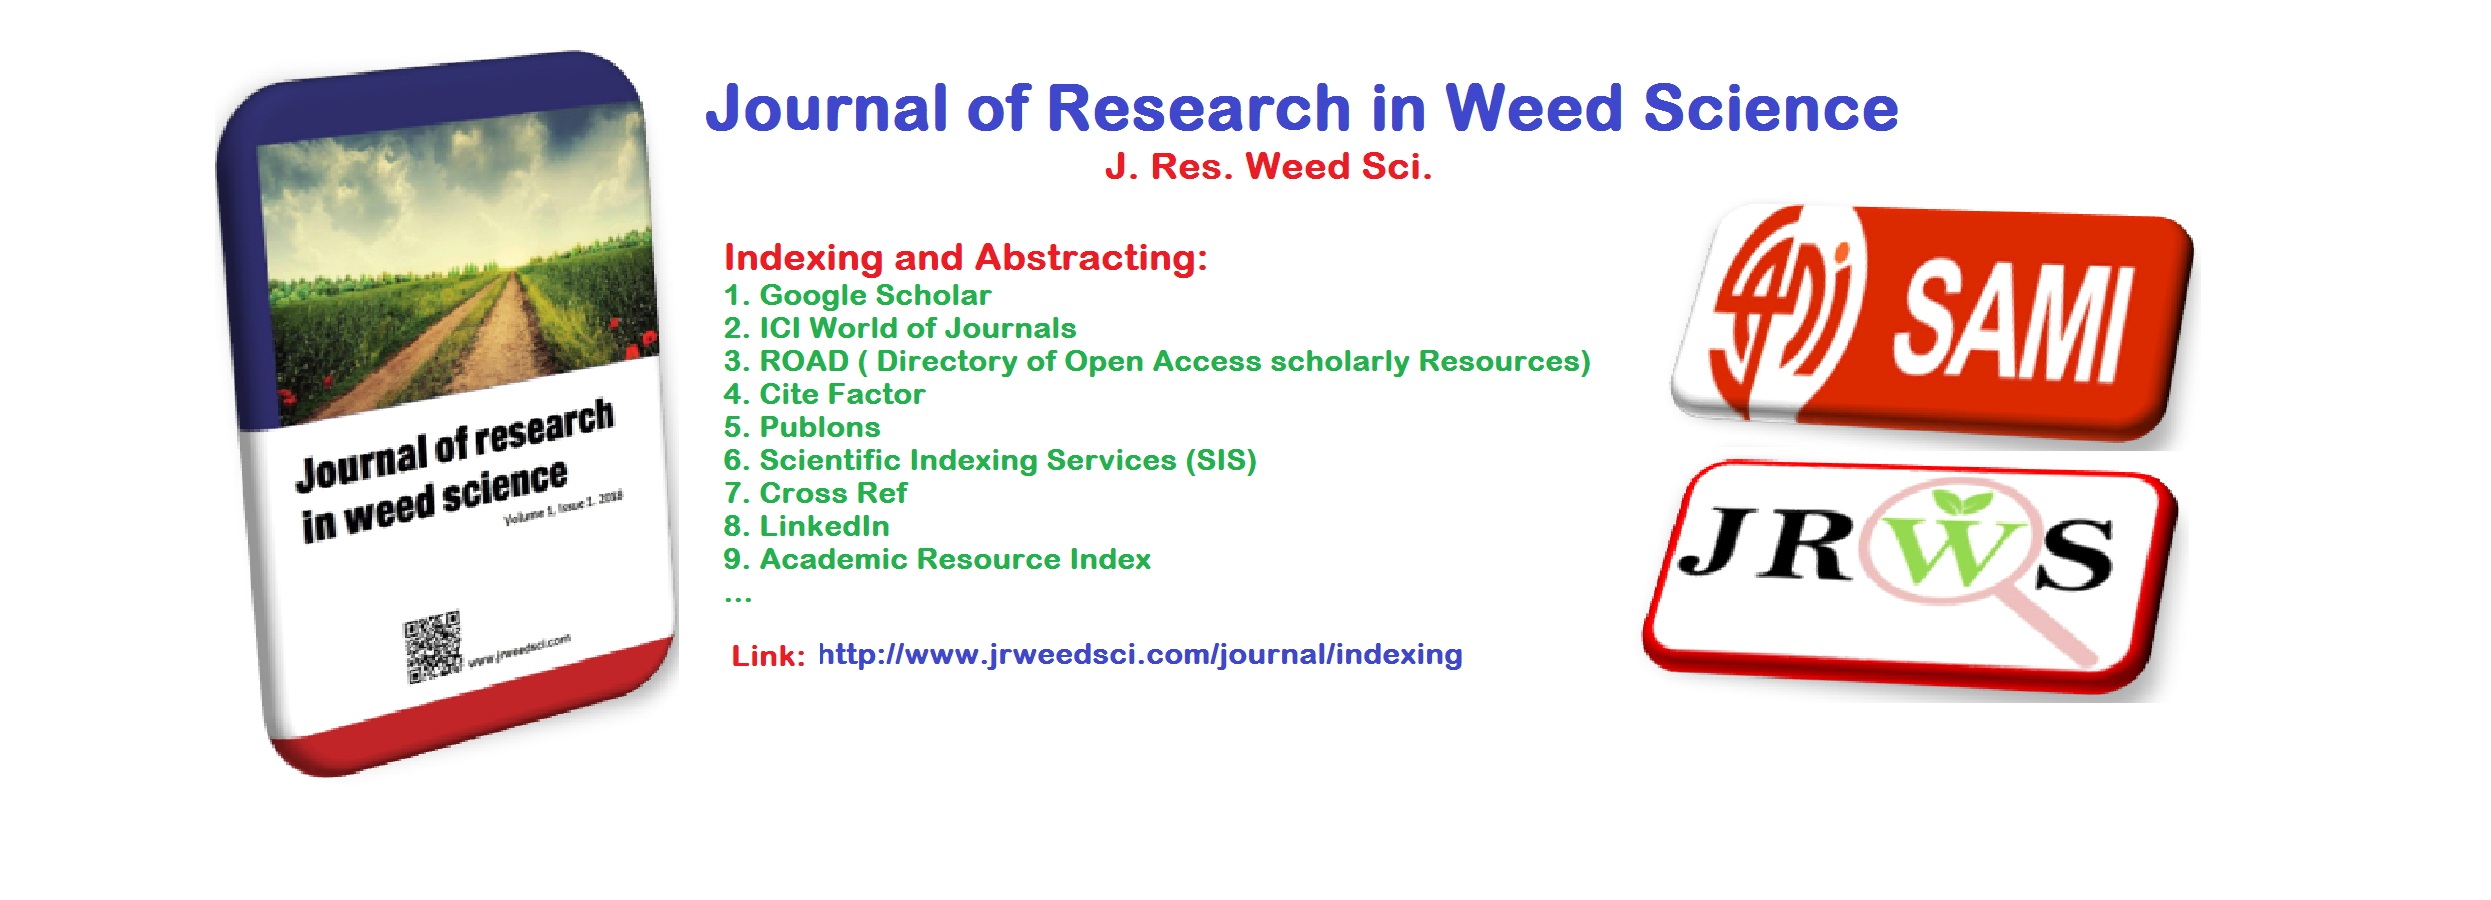 Journal of Research in Weed Science